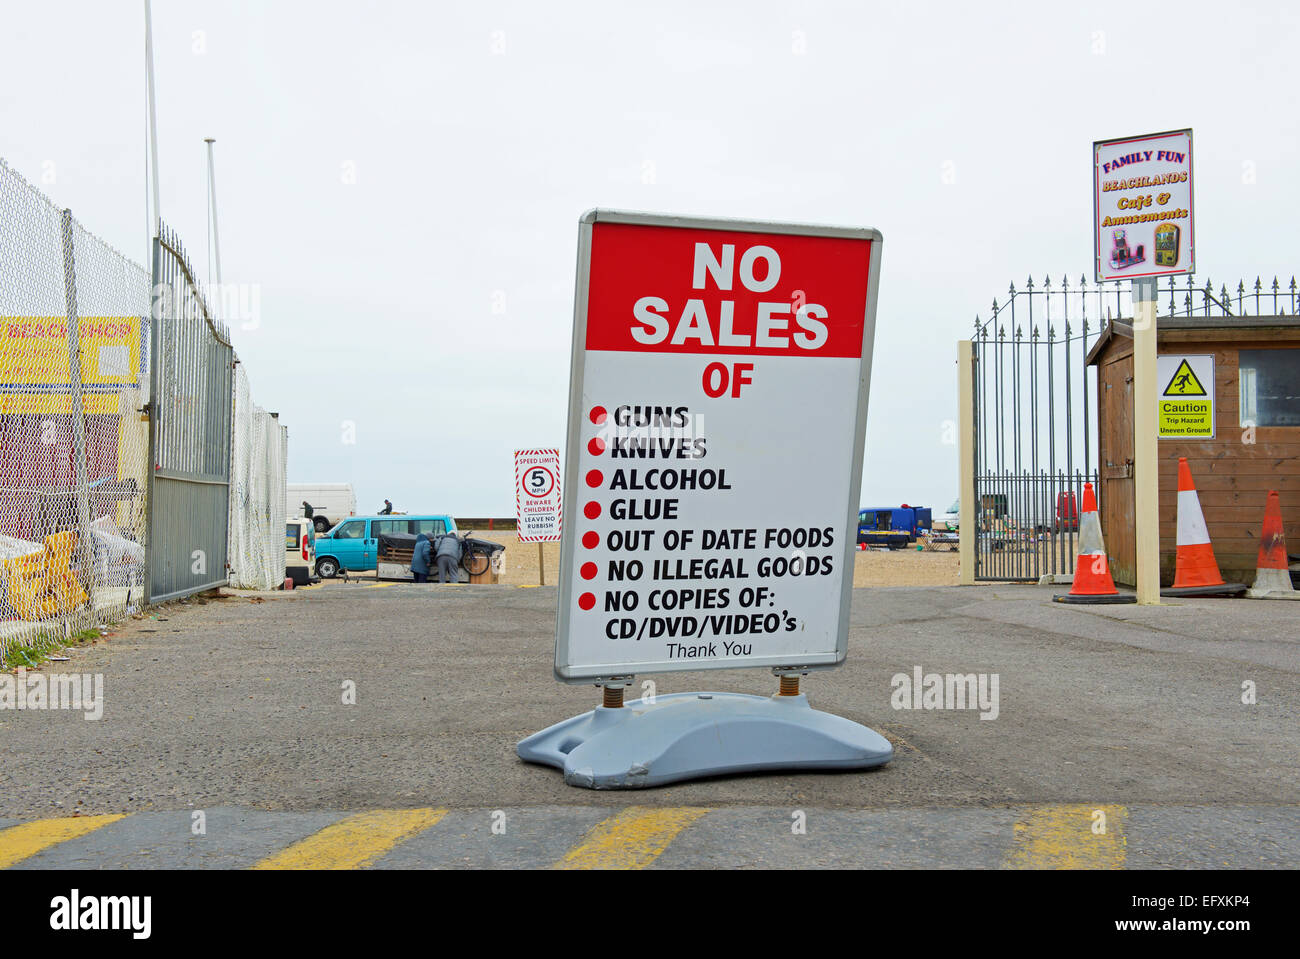 Sign outside car-boot sale: no guns, knives, alcohol, glue, out of date foods, illegal goods, copies of CDs, DVDs - Stock Image